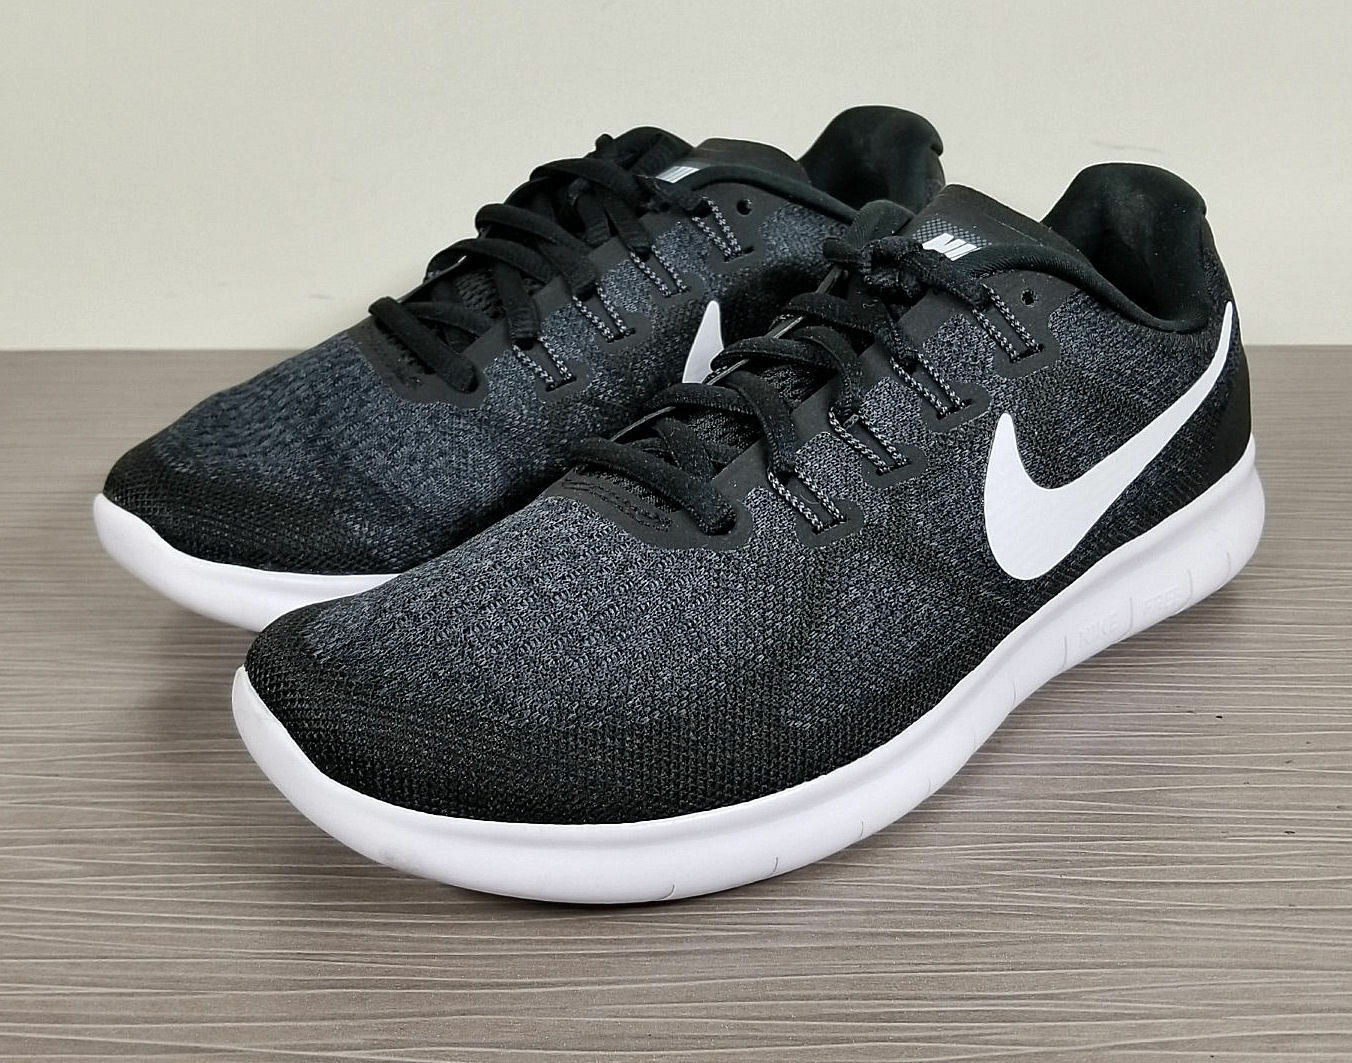 Nike Free RN Black Flyknit 2017 Running Shoes, Black RN & White, Womens Various Sizes fecf87